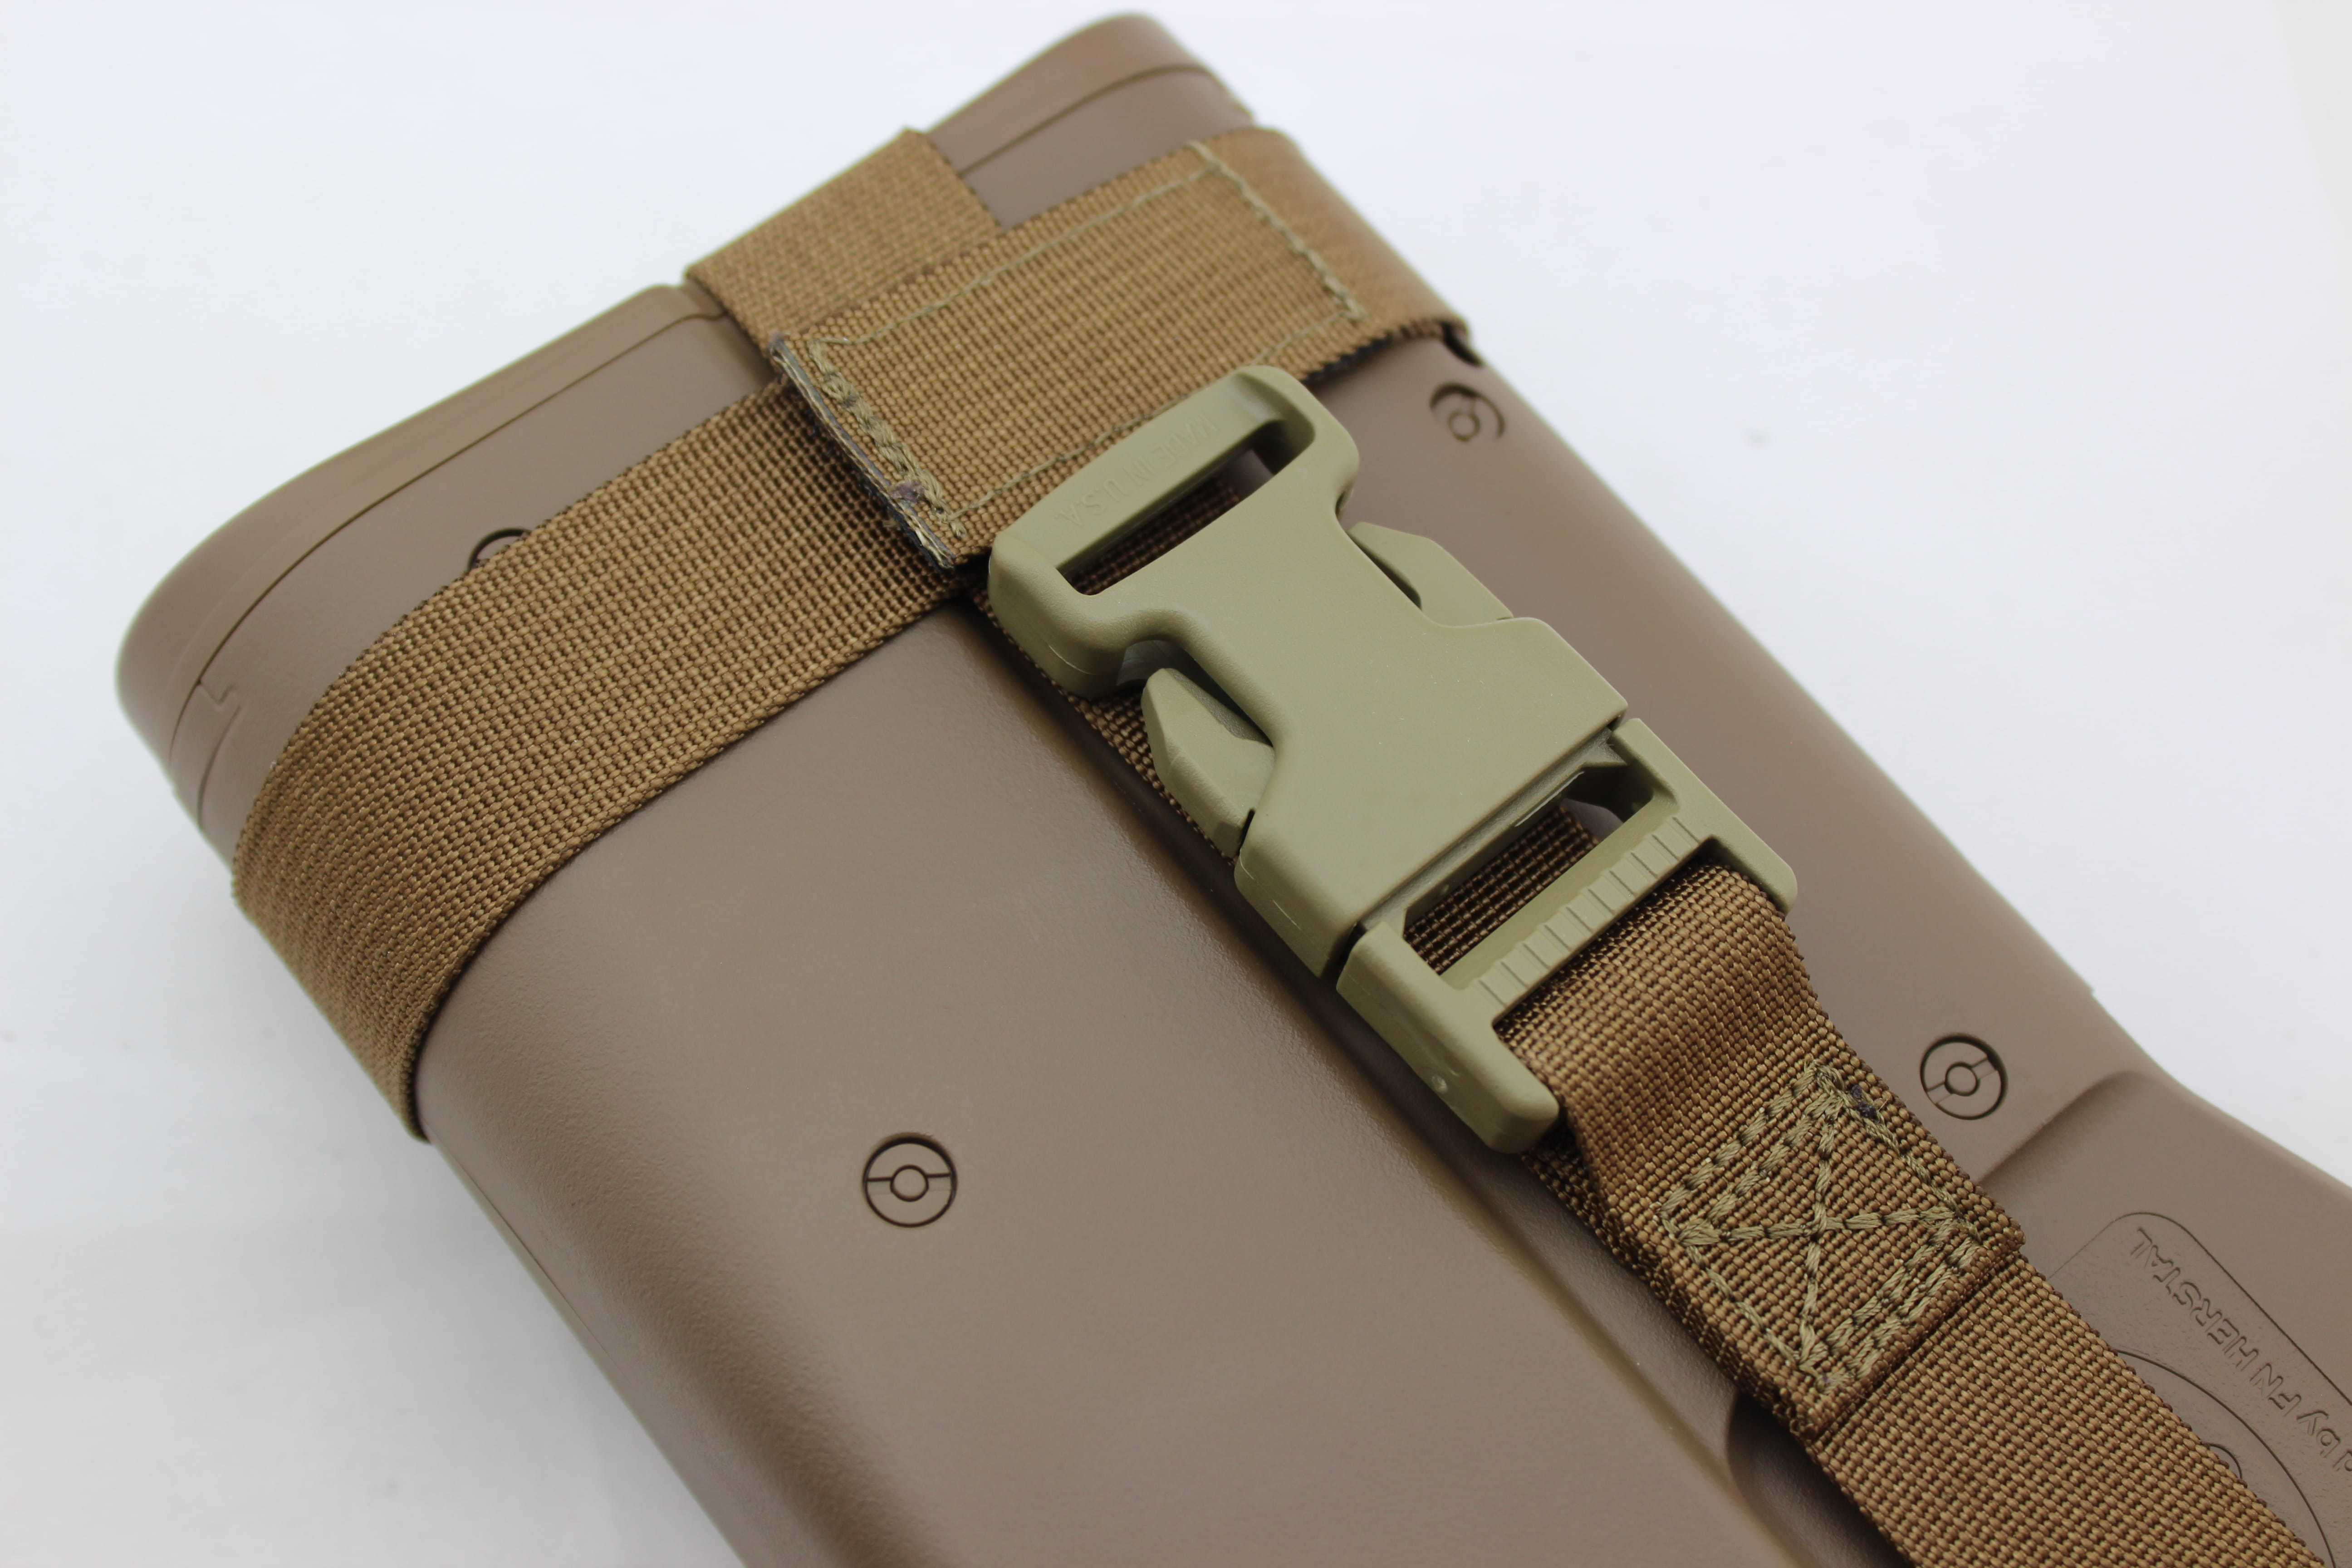 P90 Sling Harness - Tactical Gear Lines